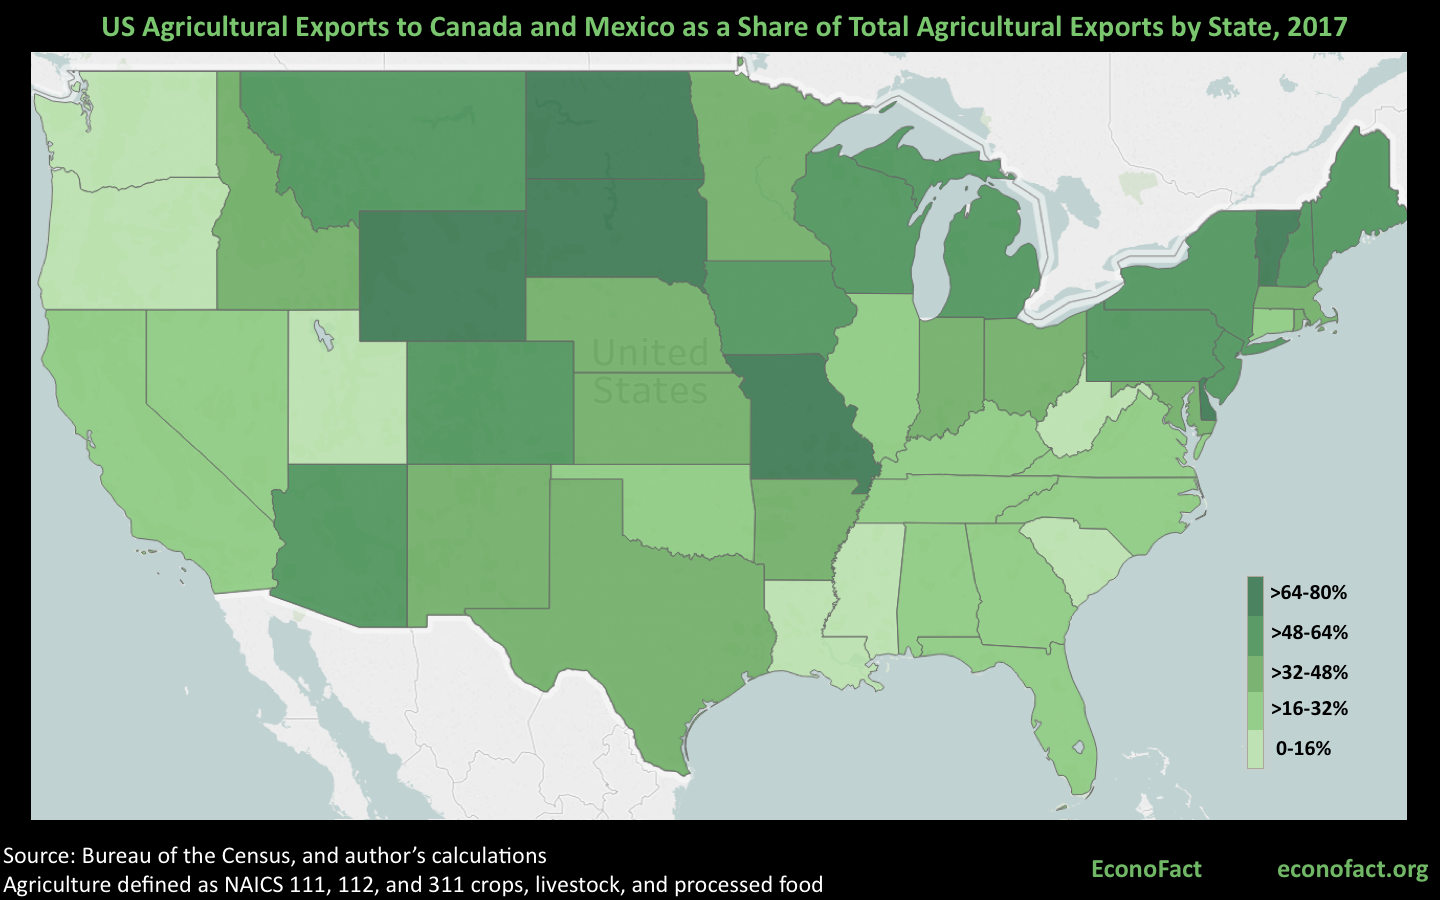 Threats to U.S. Agriculture from U.S. Trade Policies | Econofact